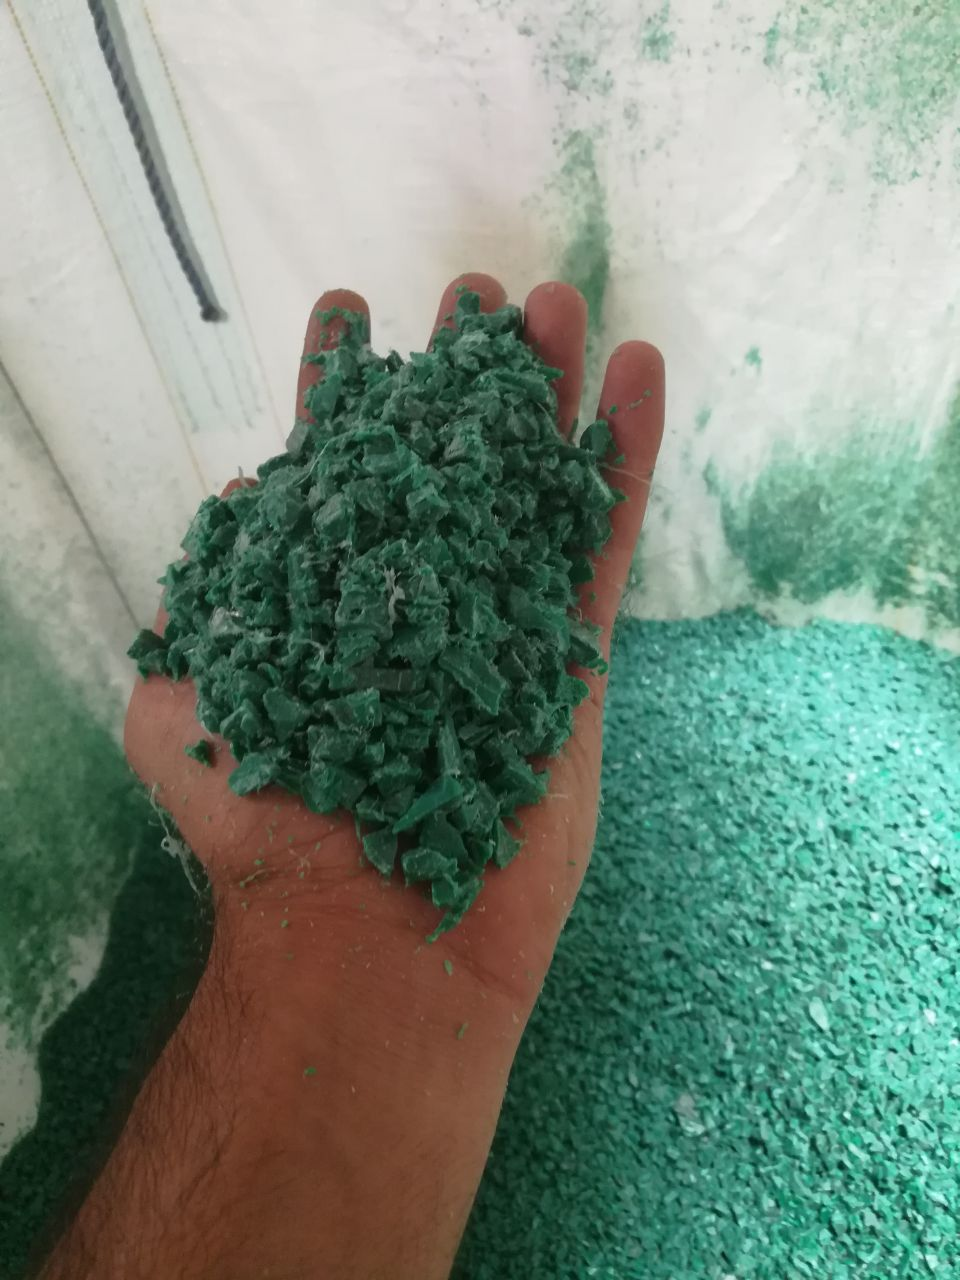 25 MT HDPE Injection Pallet Regrind @ 620 US $ for Sale